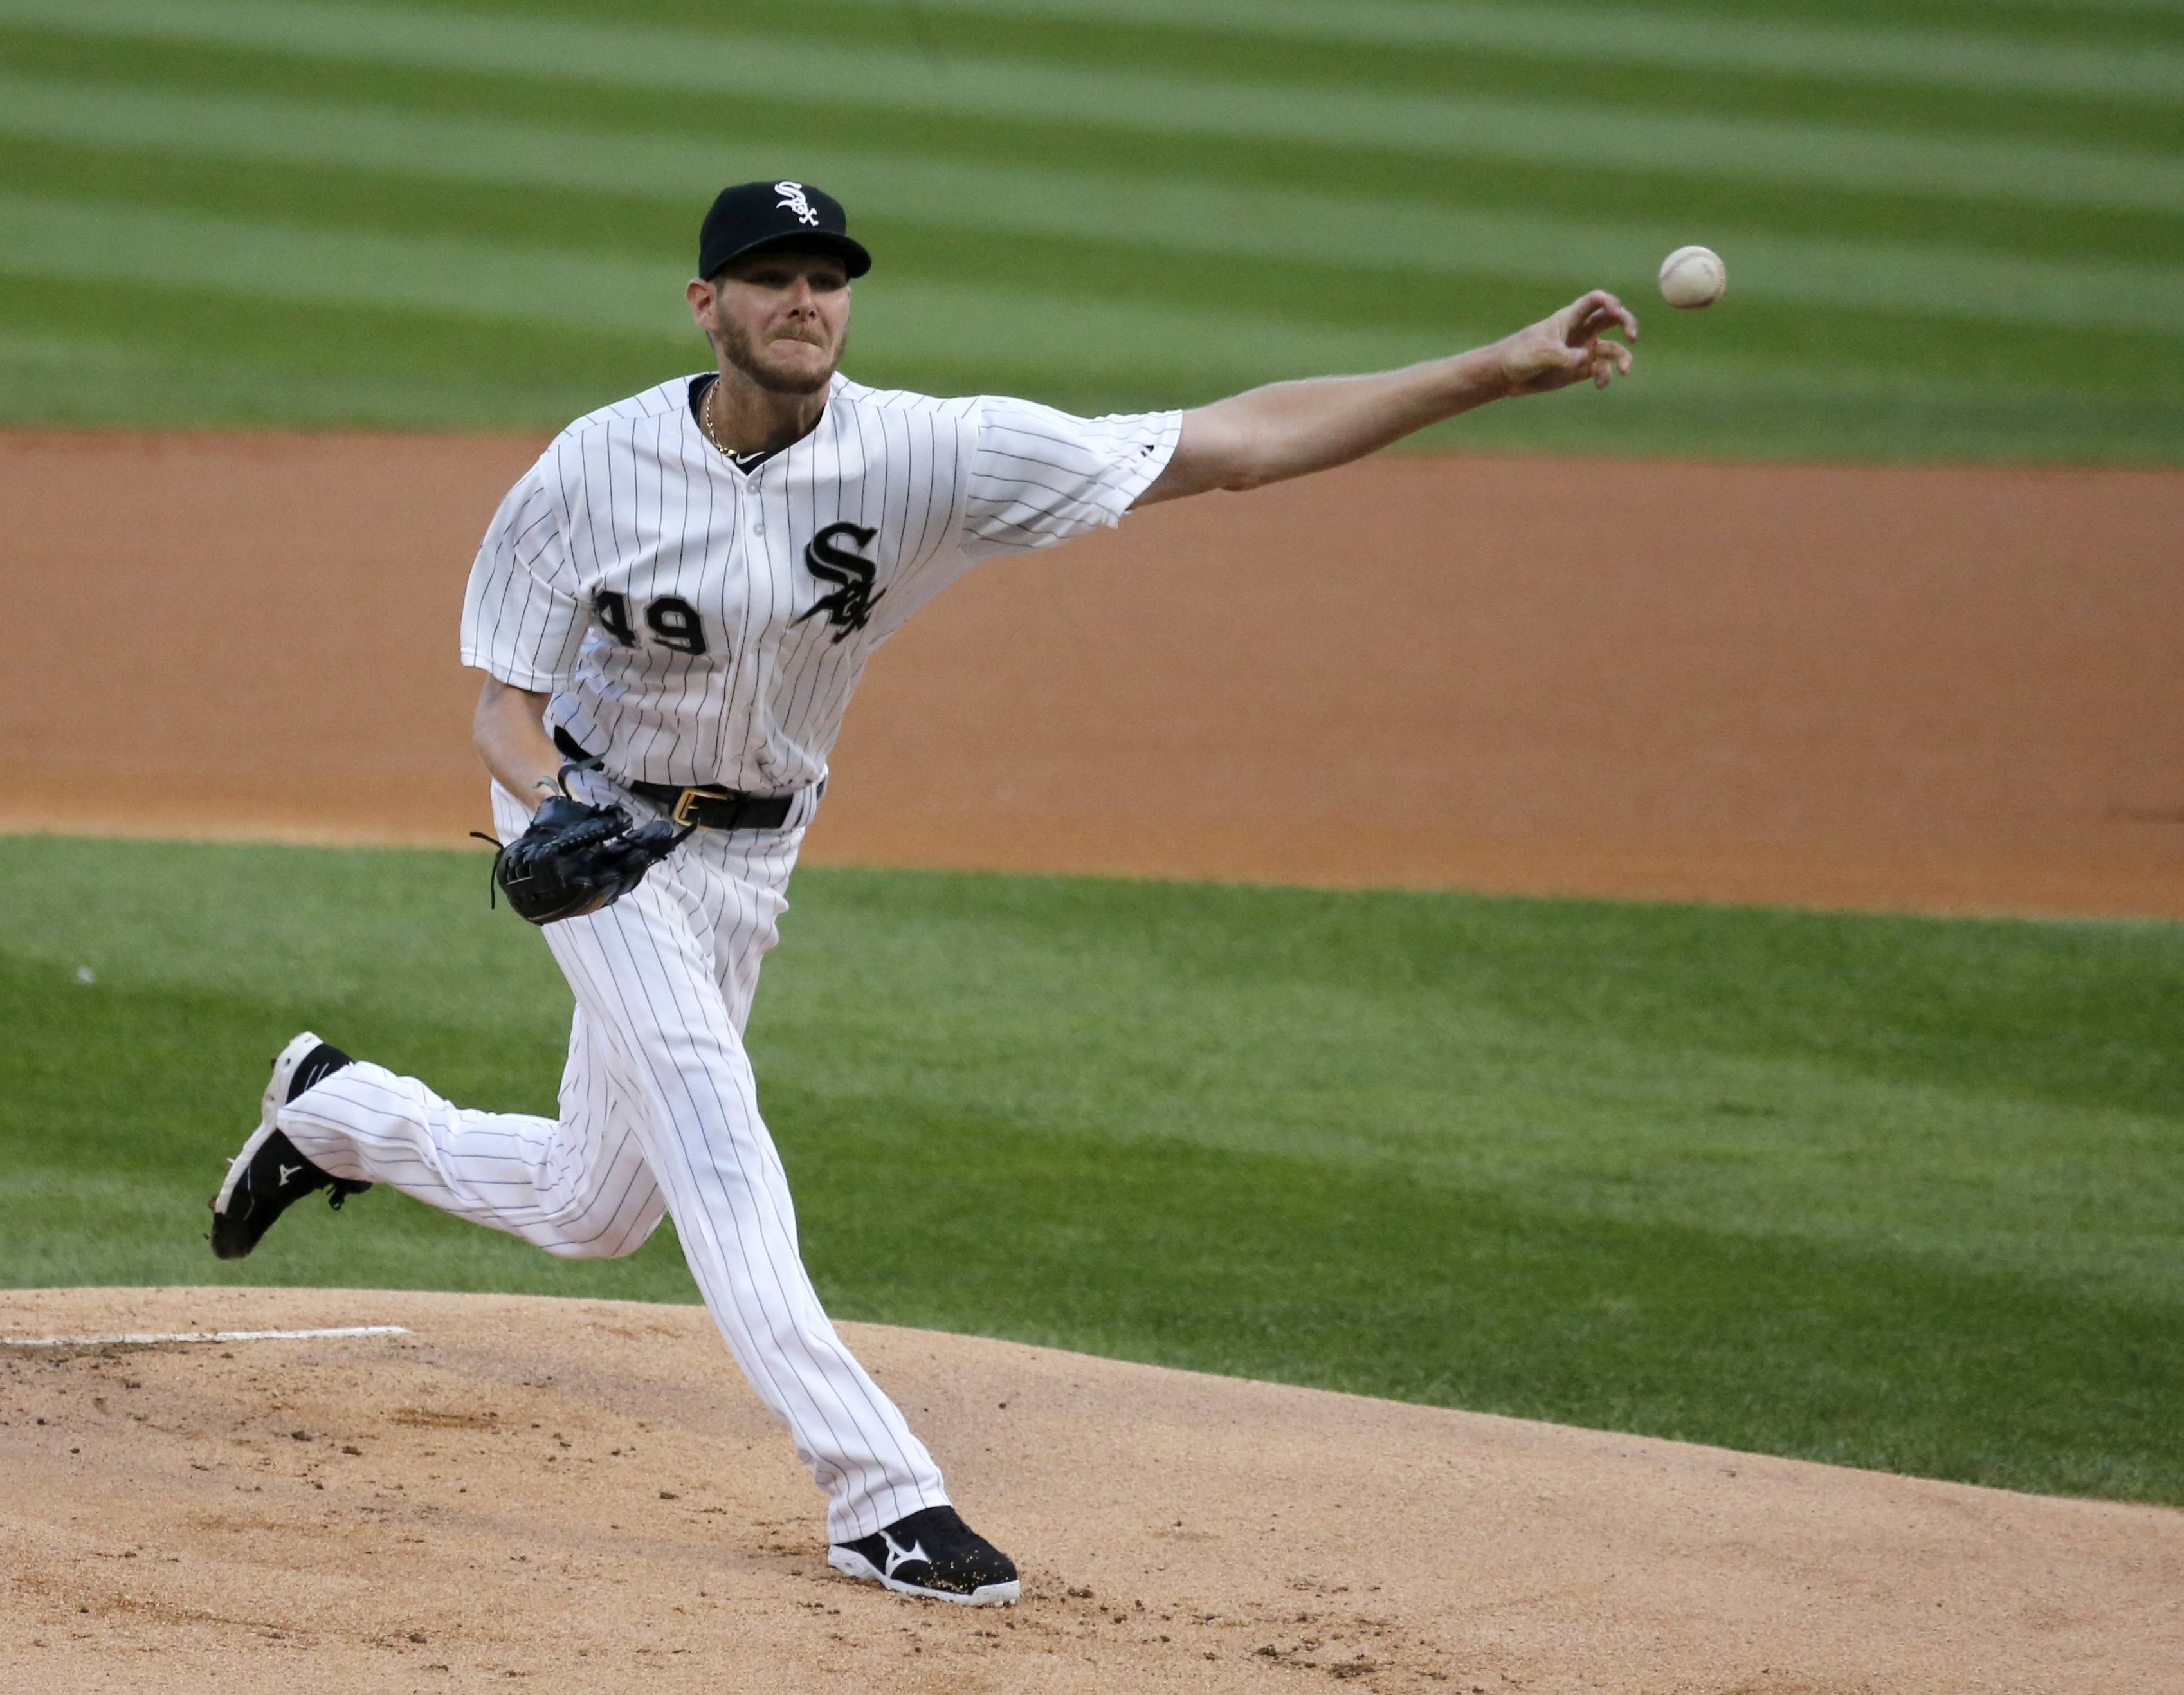 White Sox starting pitcher Chris Sale worked 7 innings Monday night and is now 9-1 with a 2.03 ERA after his victory over the Royals.